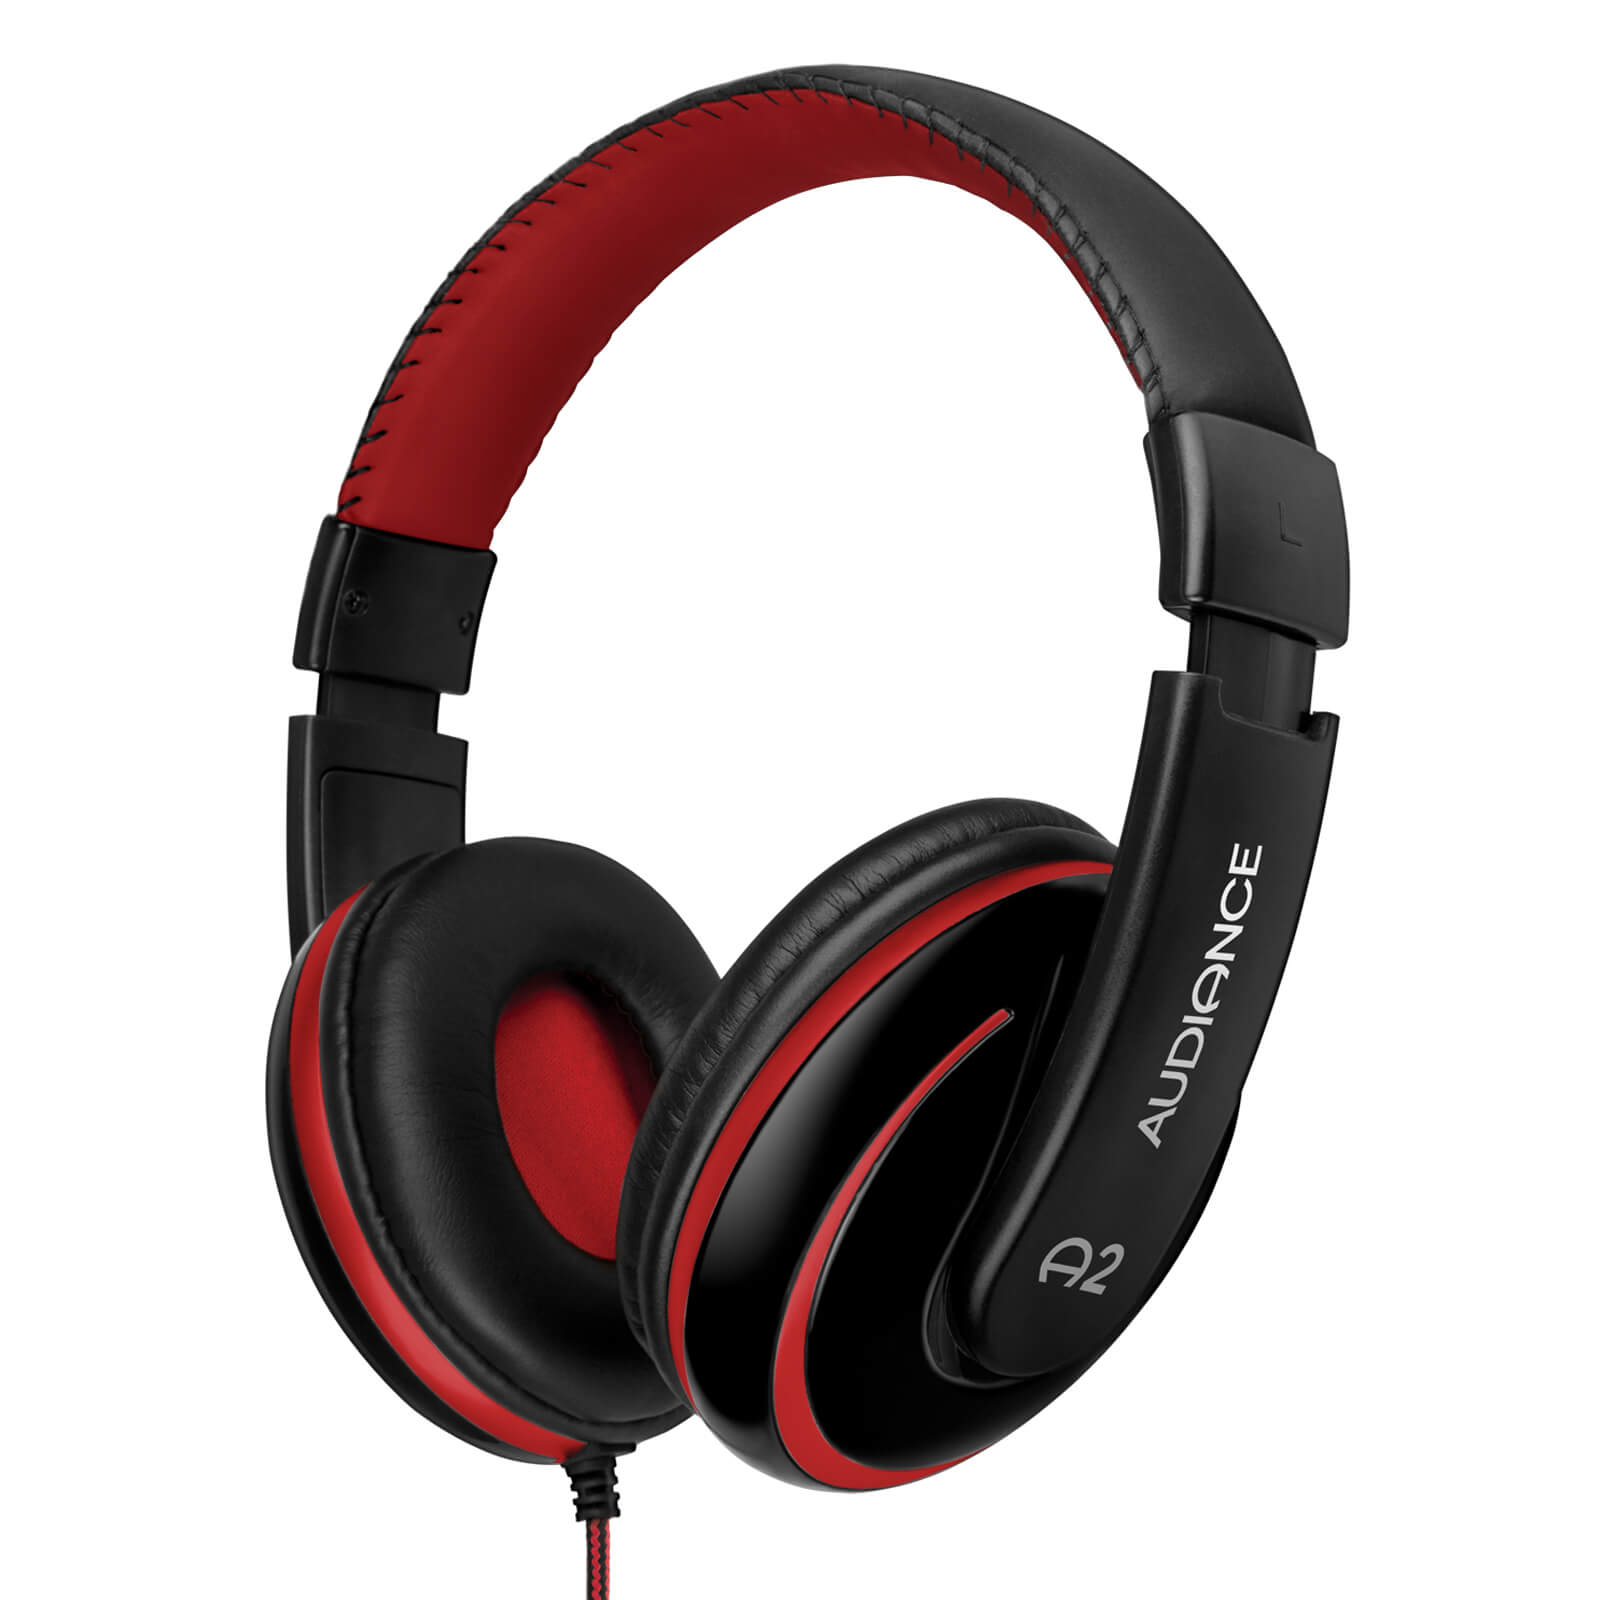 Audiance A2 Headphones - Black/Red